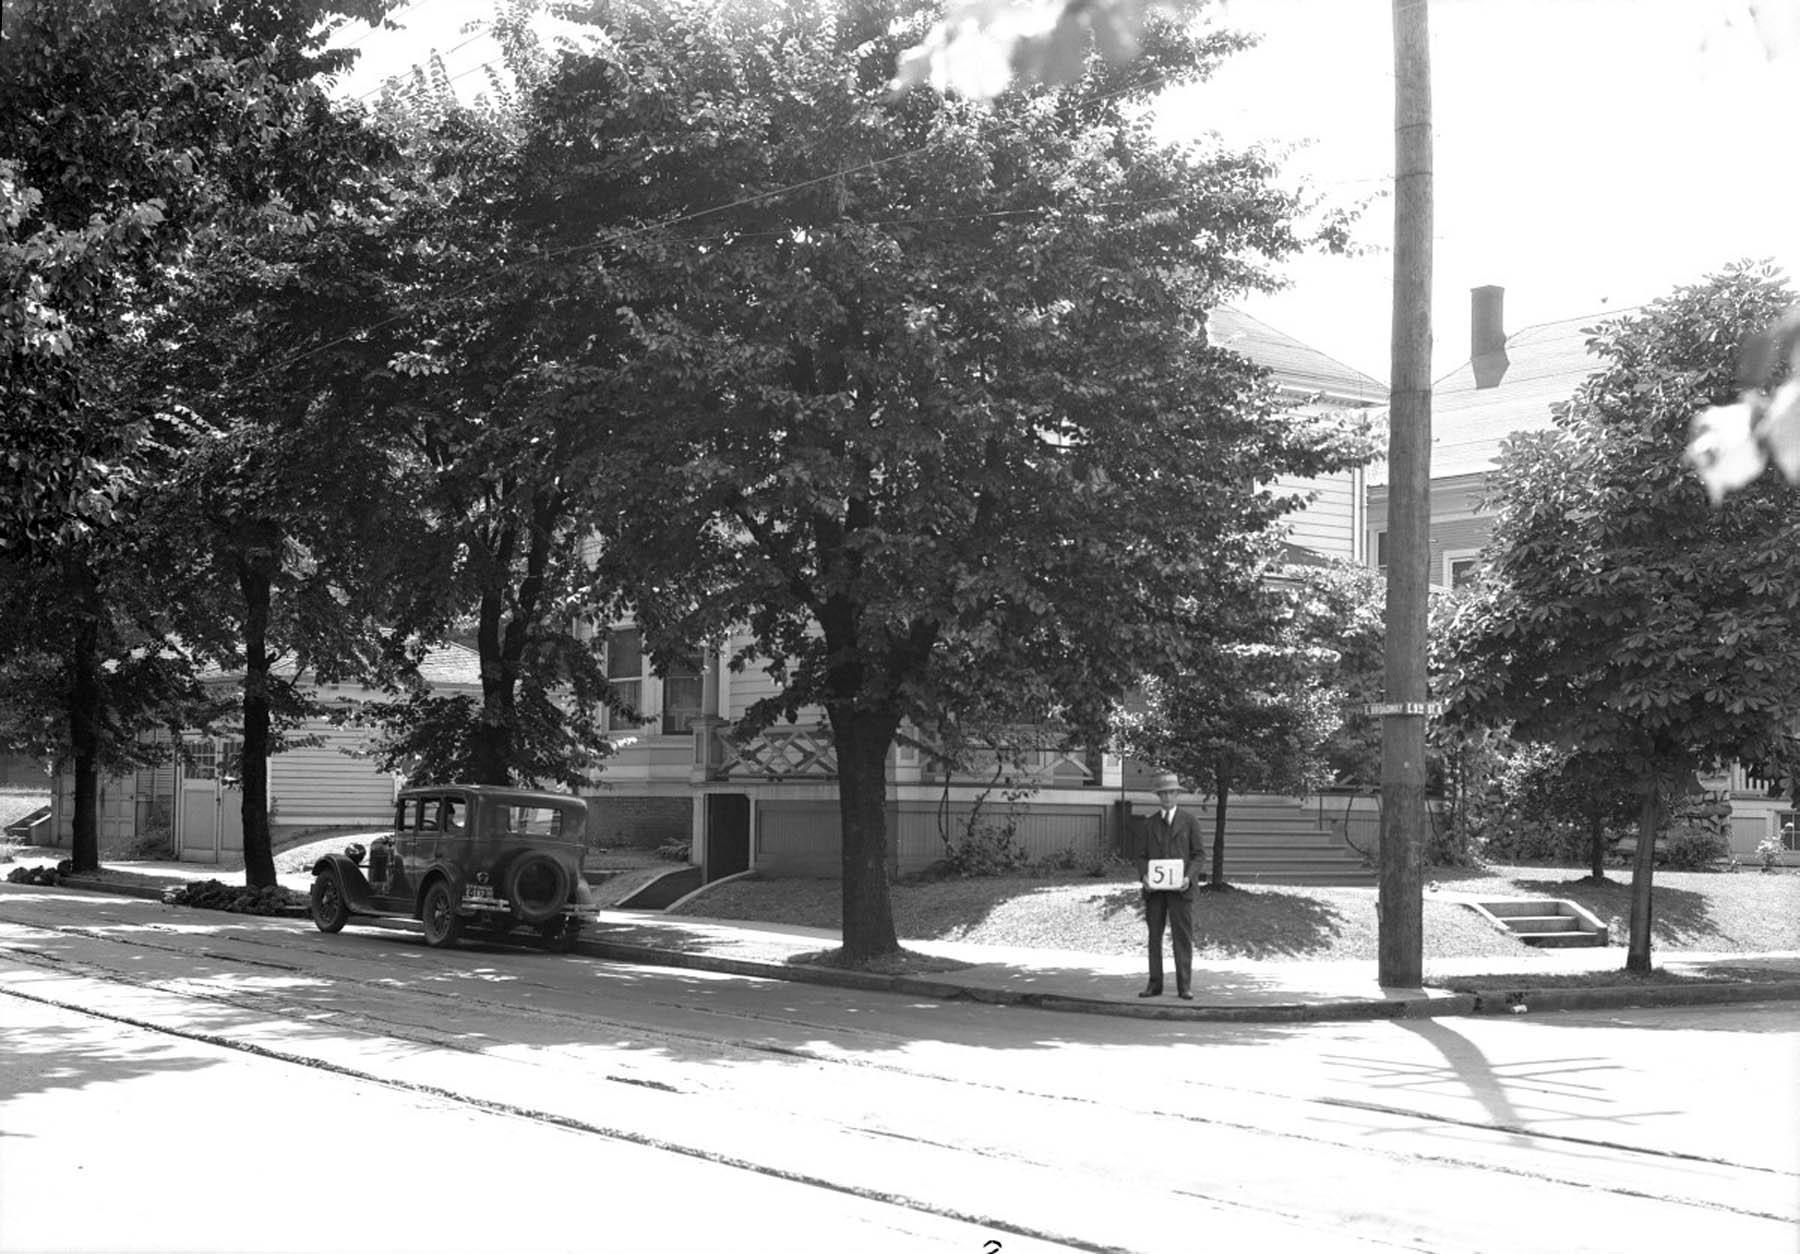 A2009-009.3264 - Residence NE Broadway and 9th Ave 1929